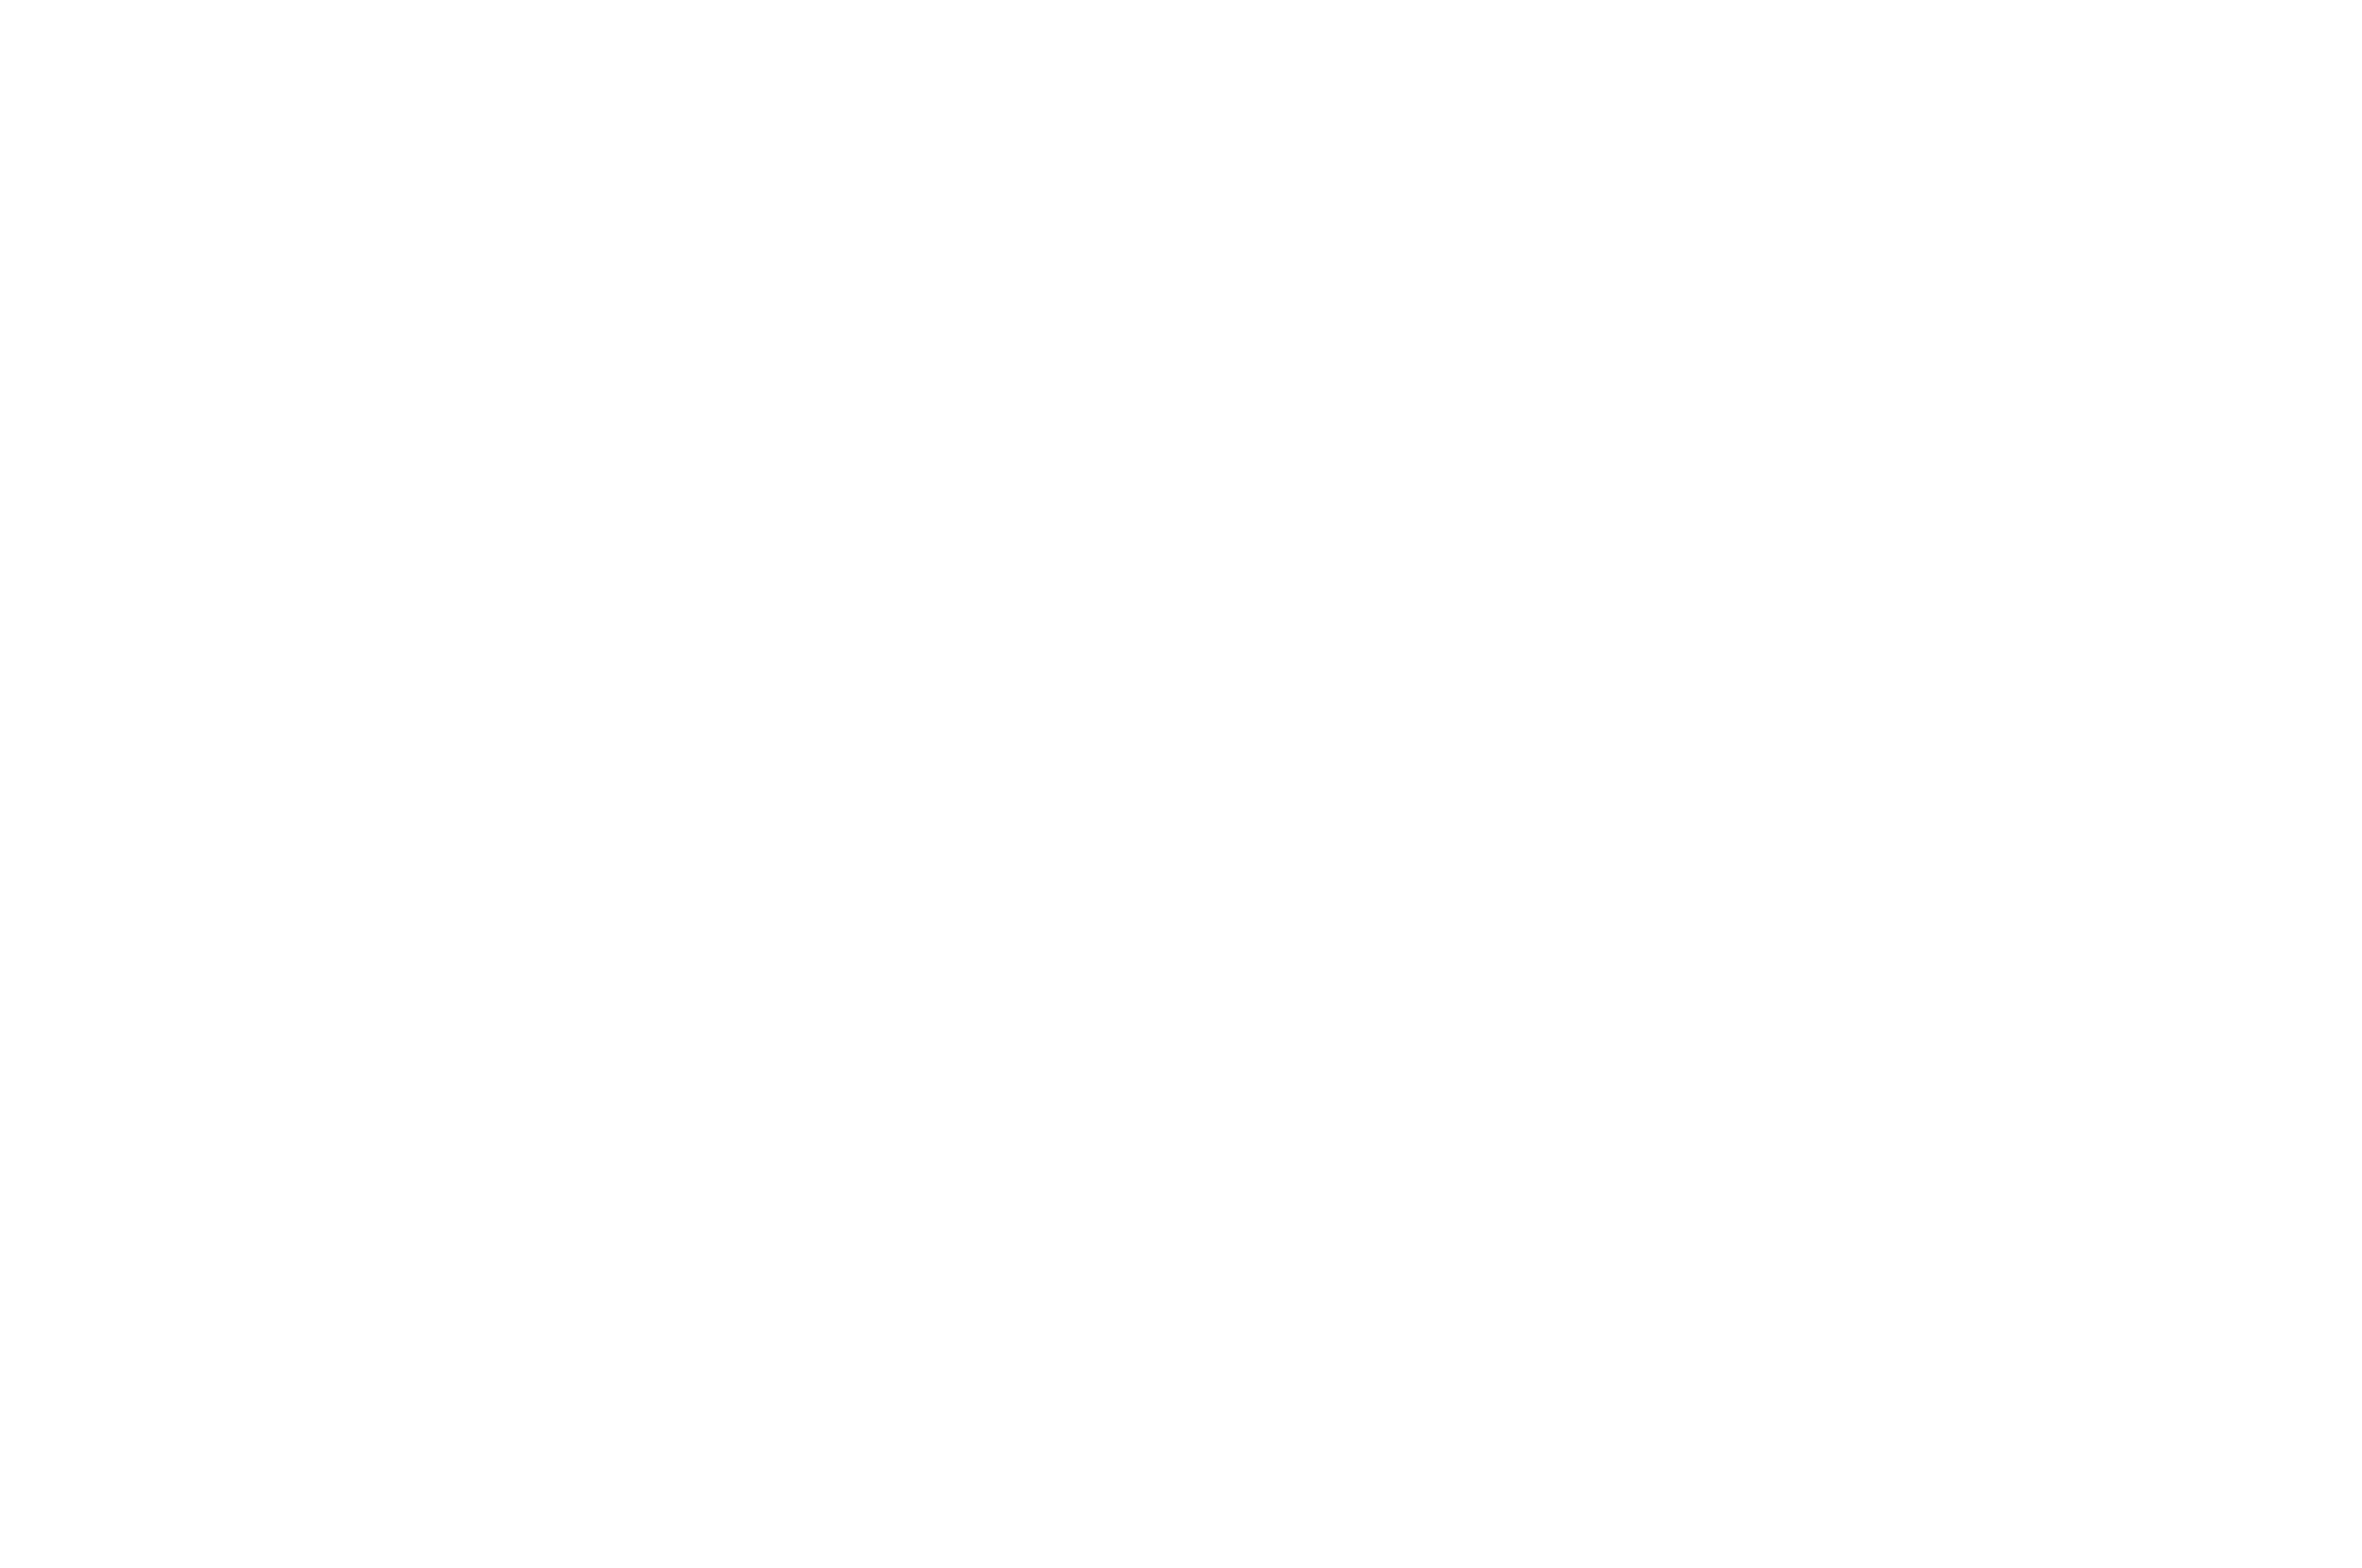 OFFICIALSELECTION-AustinMicroShortFilmFestival-2019 (1).png